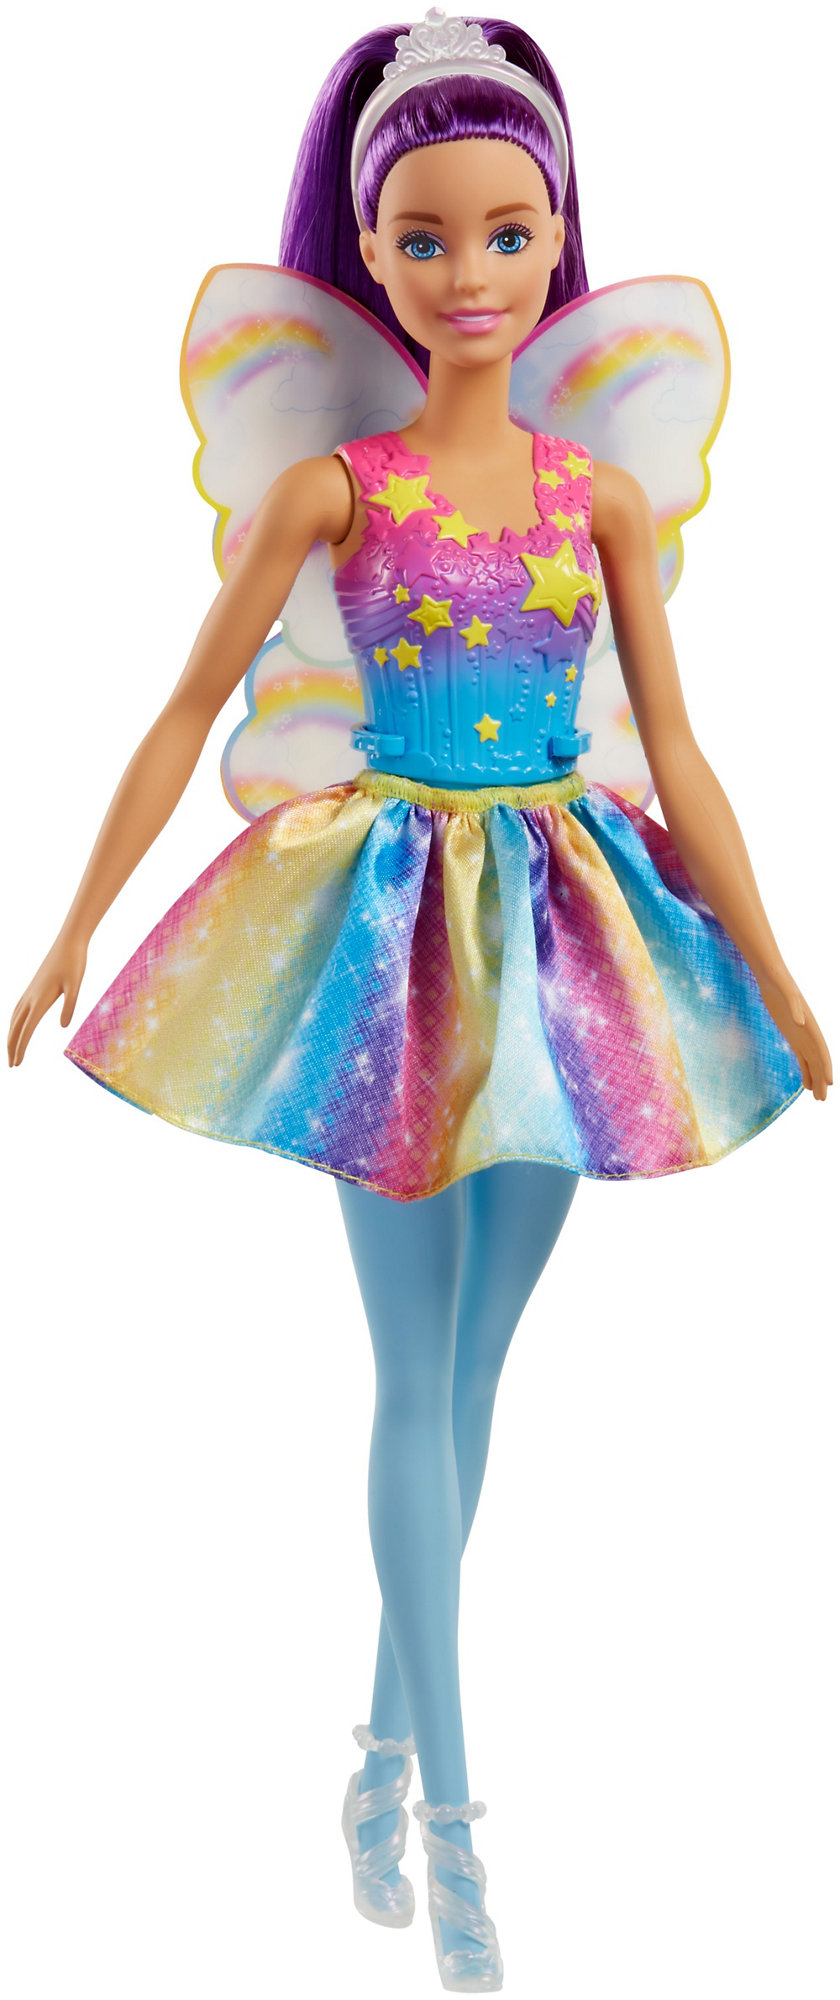 Barbie Dreamtopia Fairy Doll by Supplier Generic